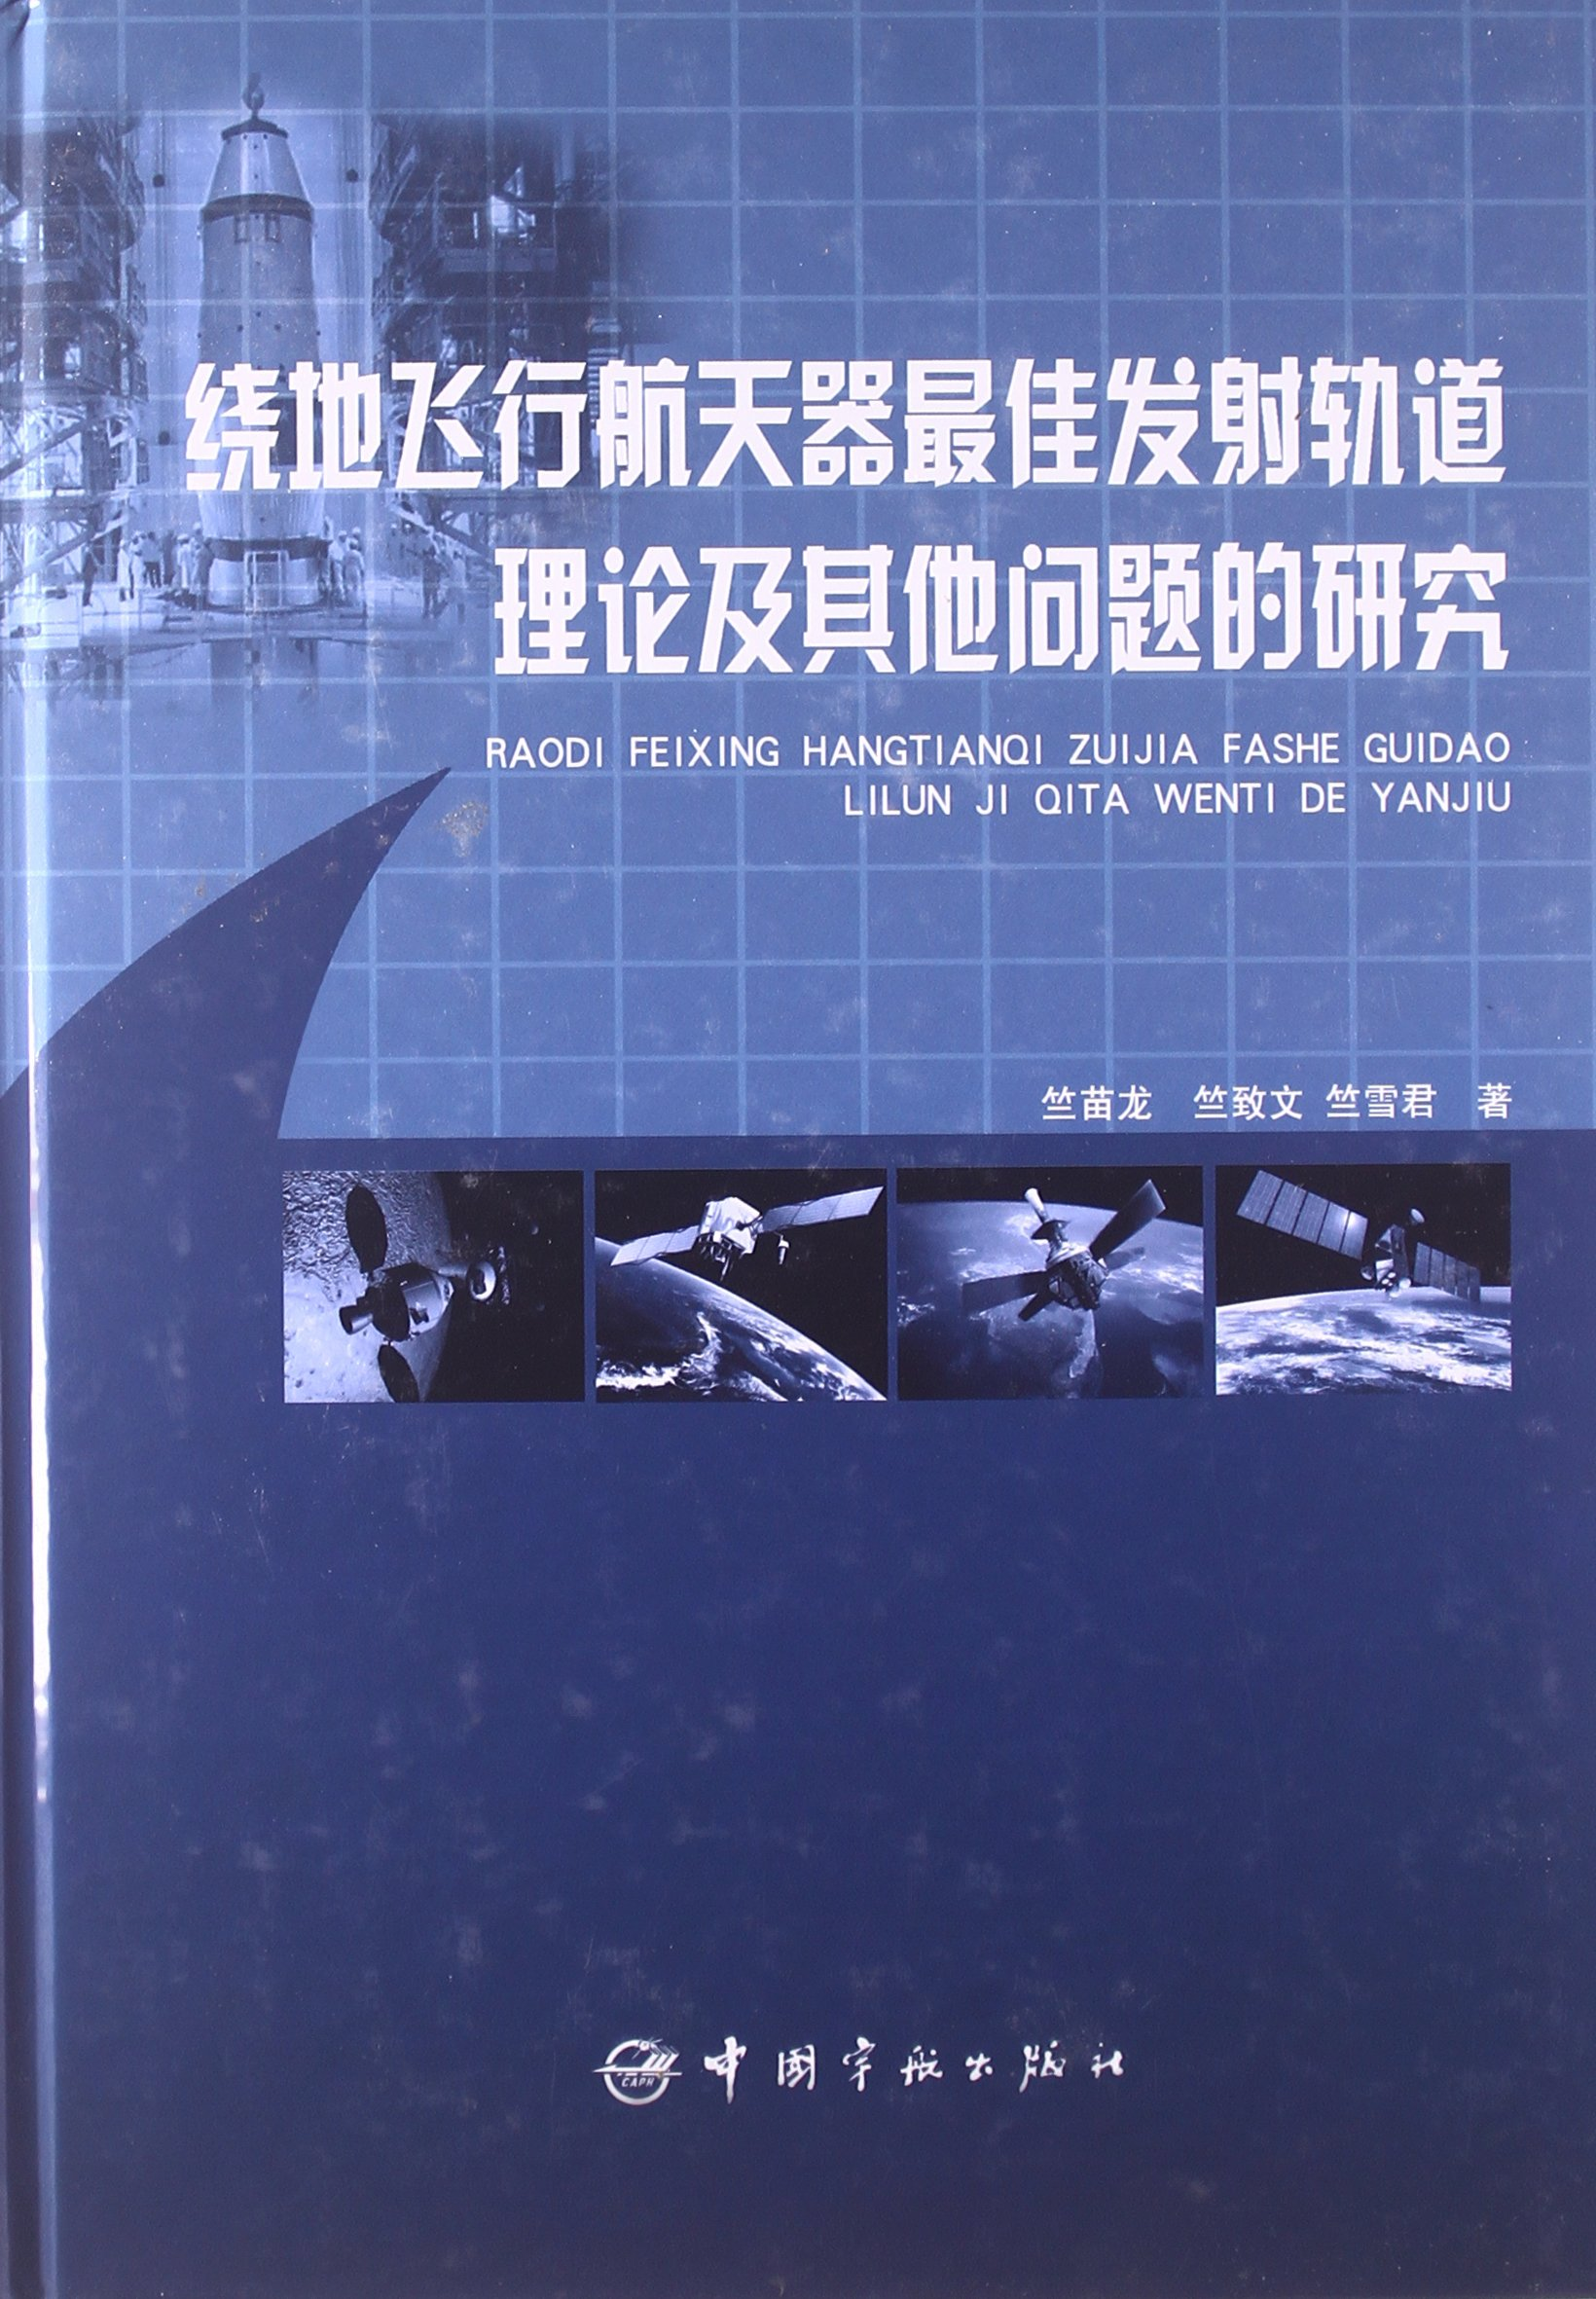 Read Online Fly around the best launch spacecraft orbital theory and other issues research(Chinese Edition) PDF